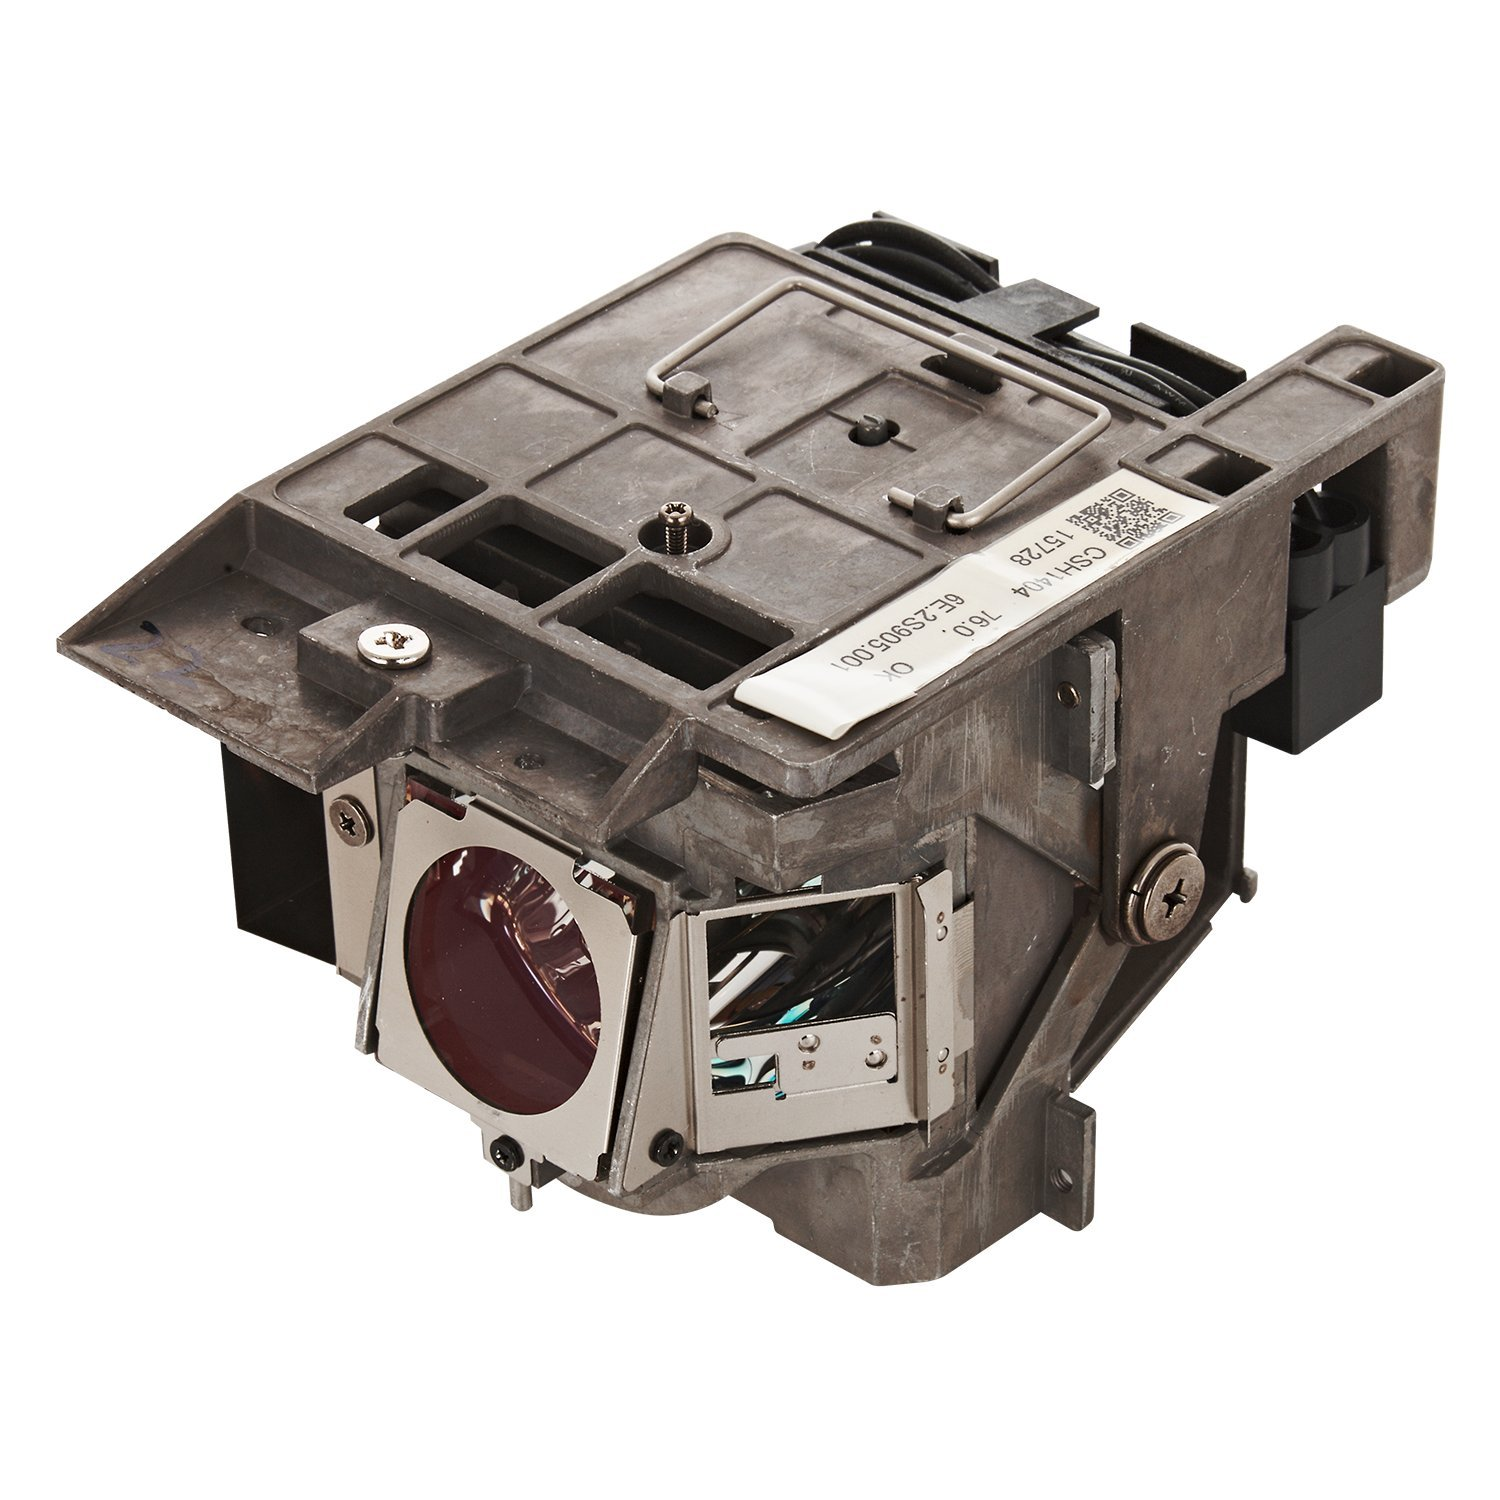 ViewSonic RLC-103 Projector Replacement Lamp for ViewSonic PRO8510L, PRO8530HDL Projectors by ViewSonic (Image #2)